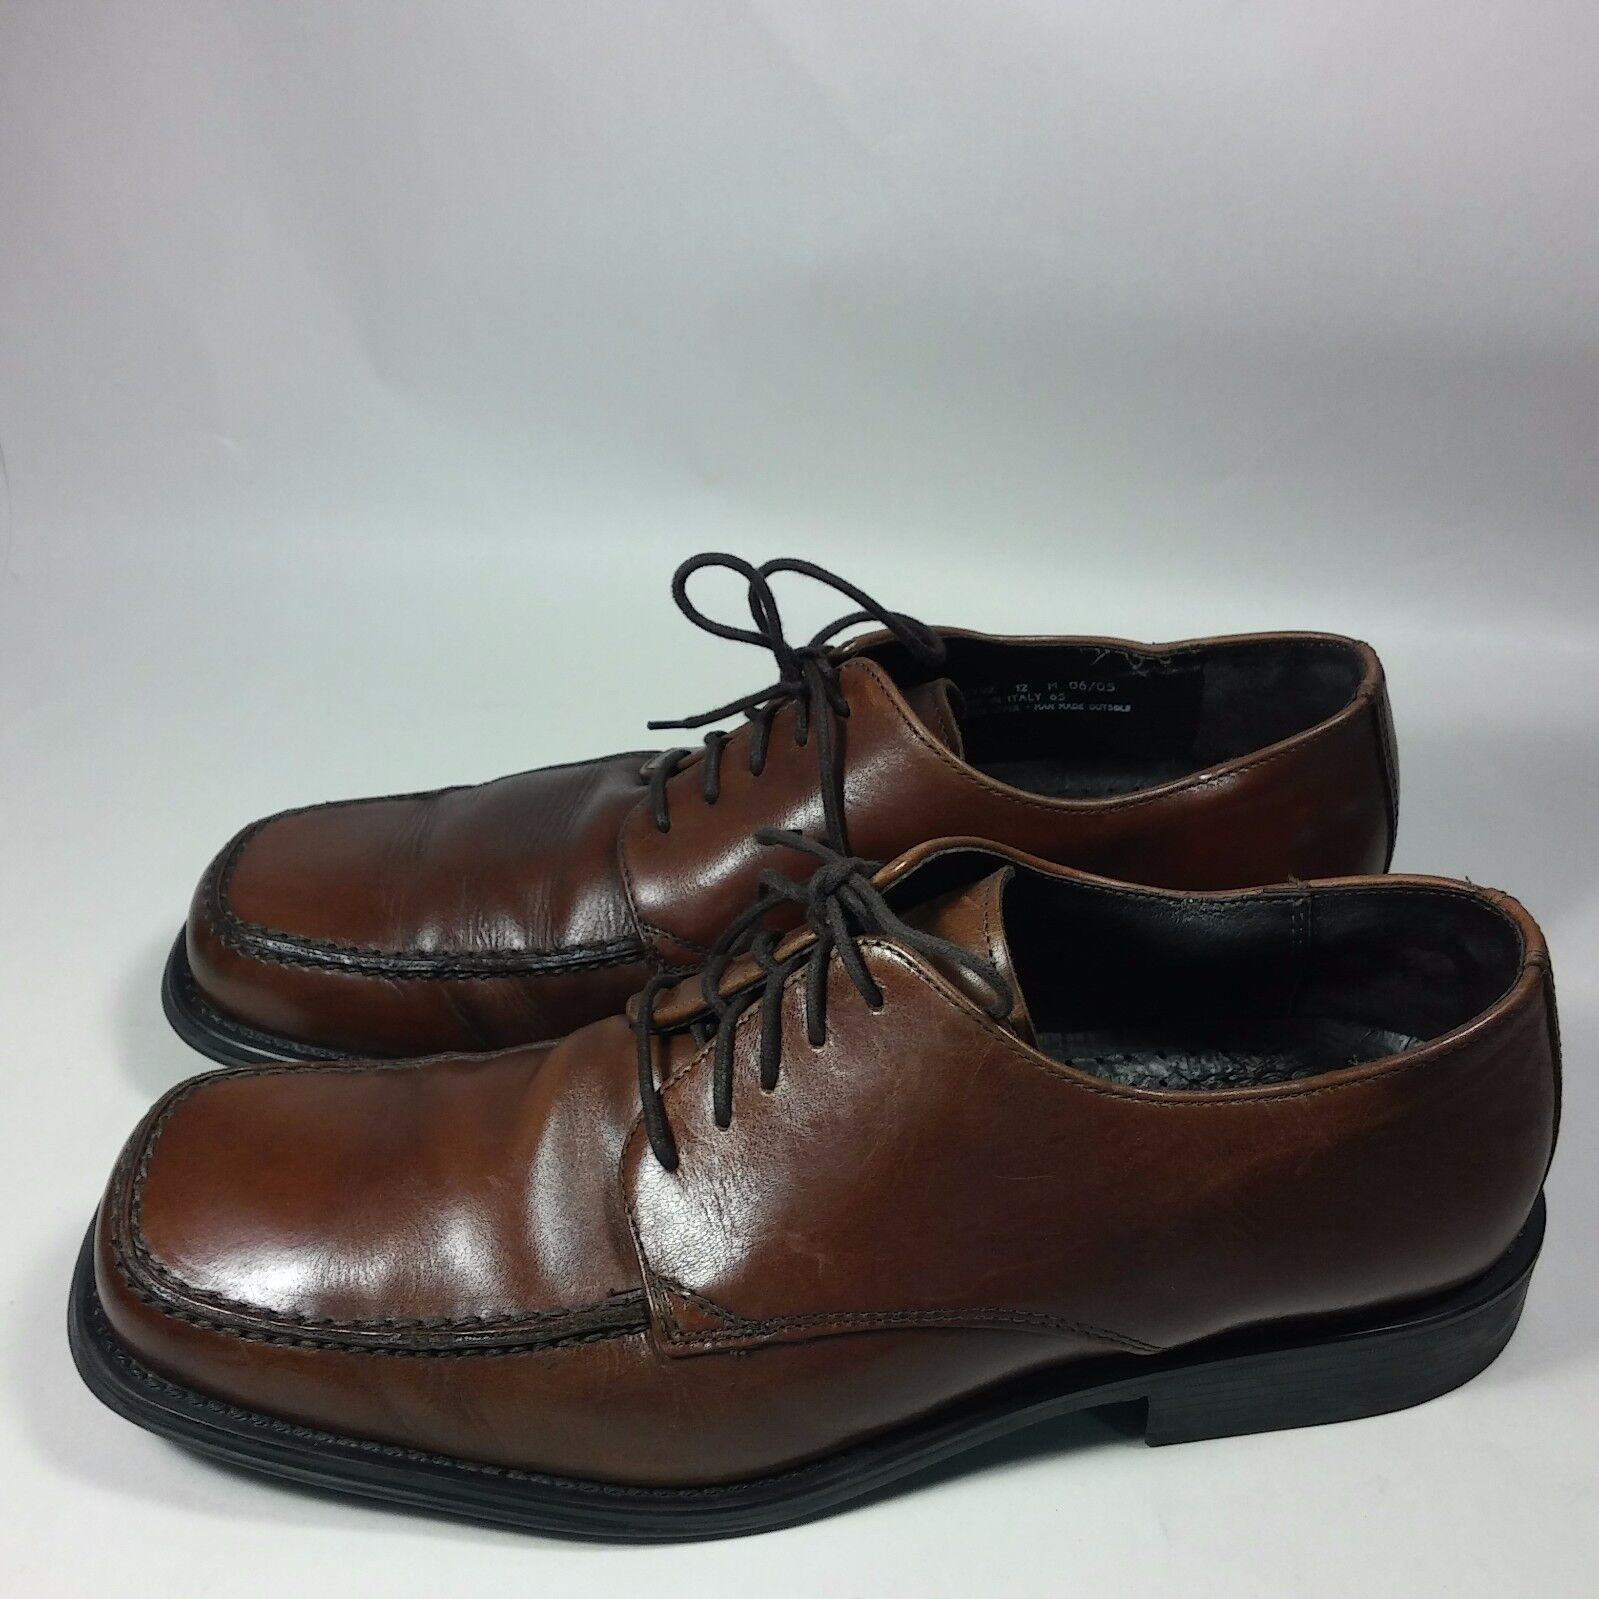 Men's Bostonian shoes Dress Casual Oxfords Brown Leather-MADE IN ITALY-12 M